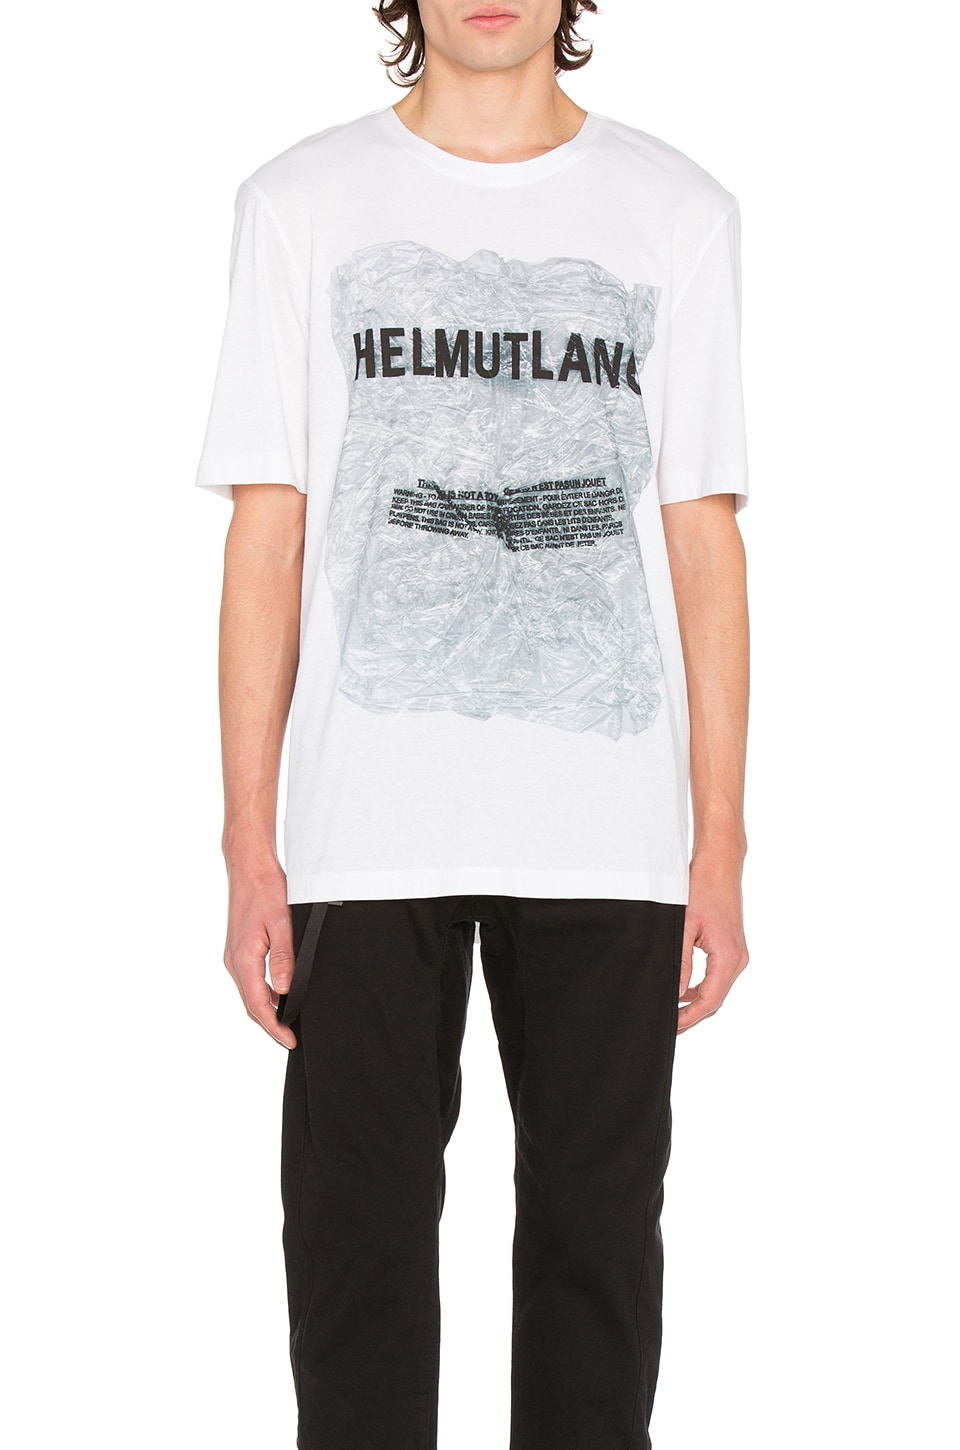 Box Fit S/S Tee by Helmut Lang